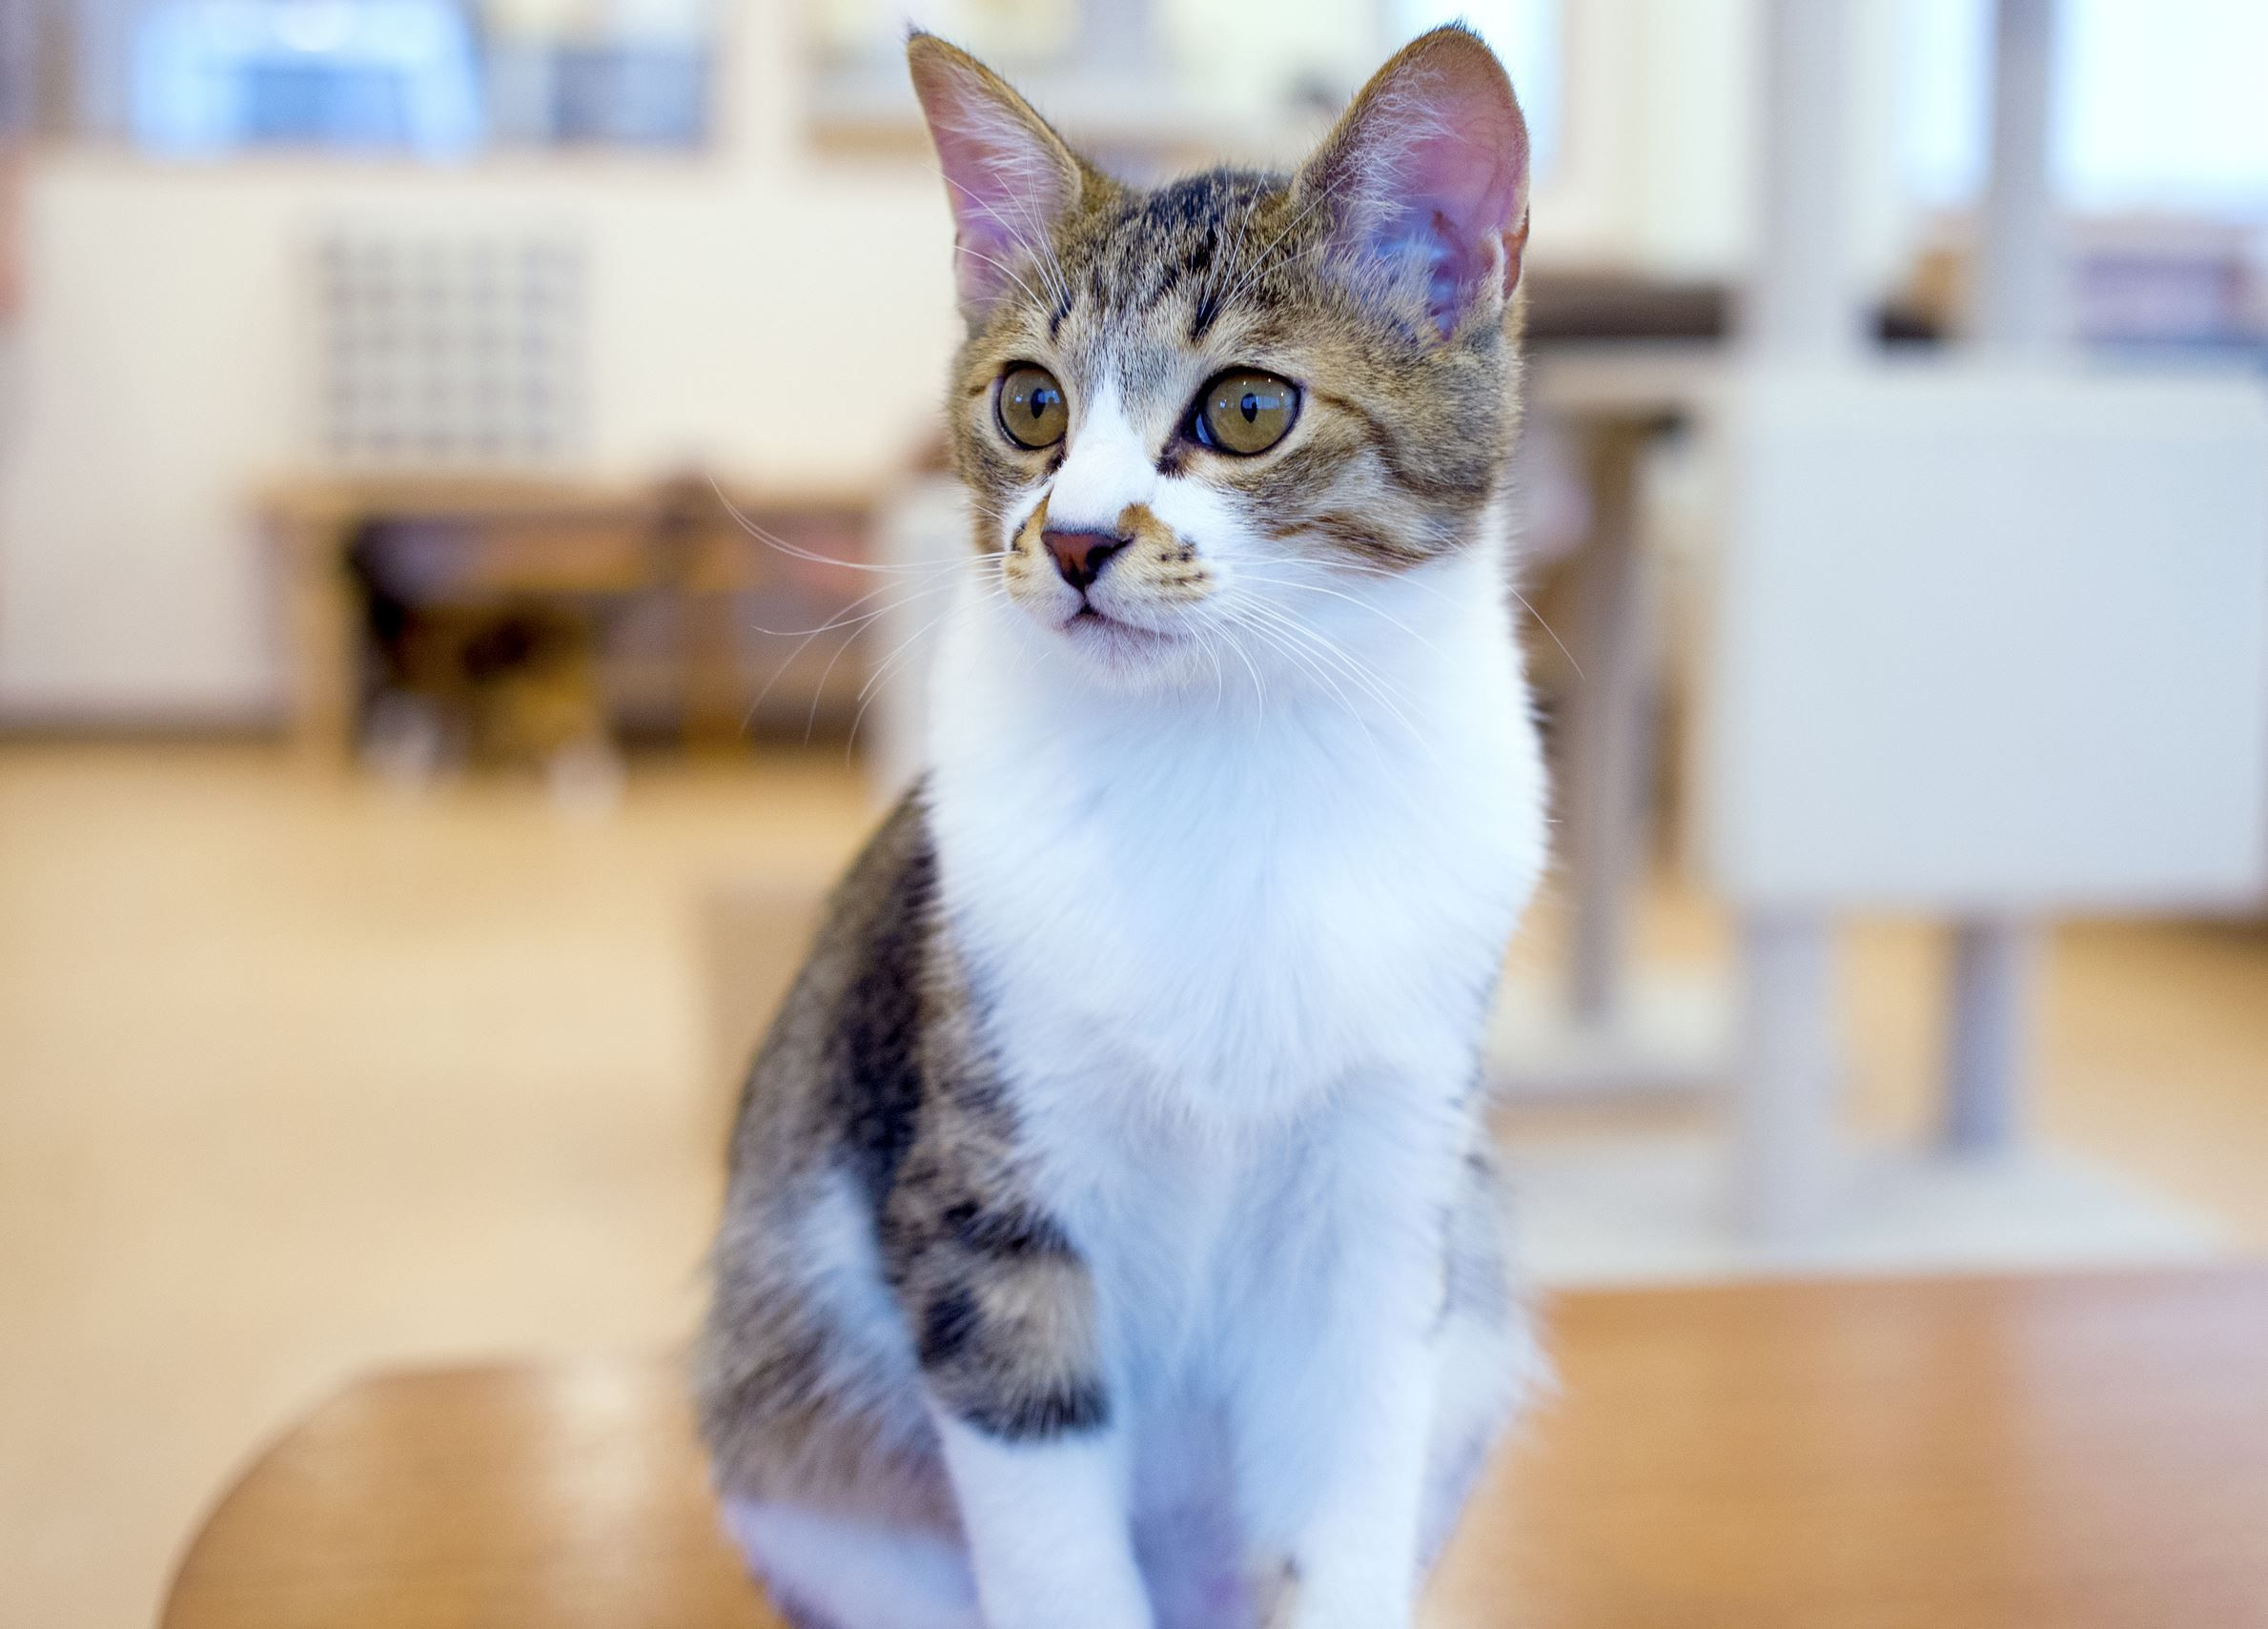 At Cat Cafe In Kanagawa Japan By Kyosuke Cats And Kittens Kittens Cutest Cats